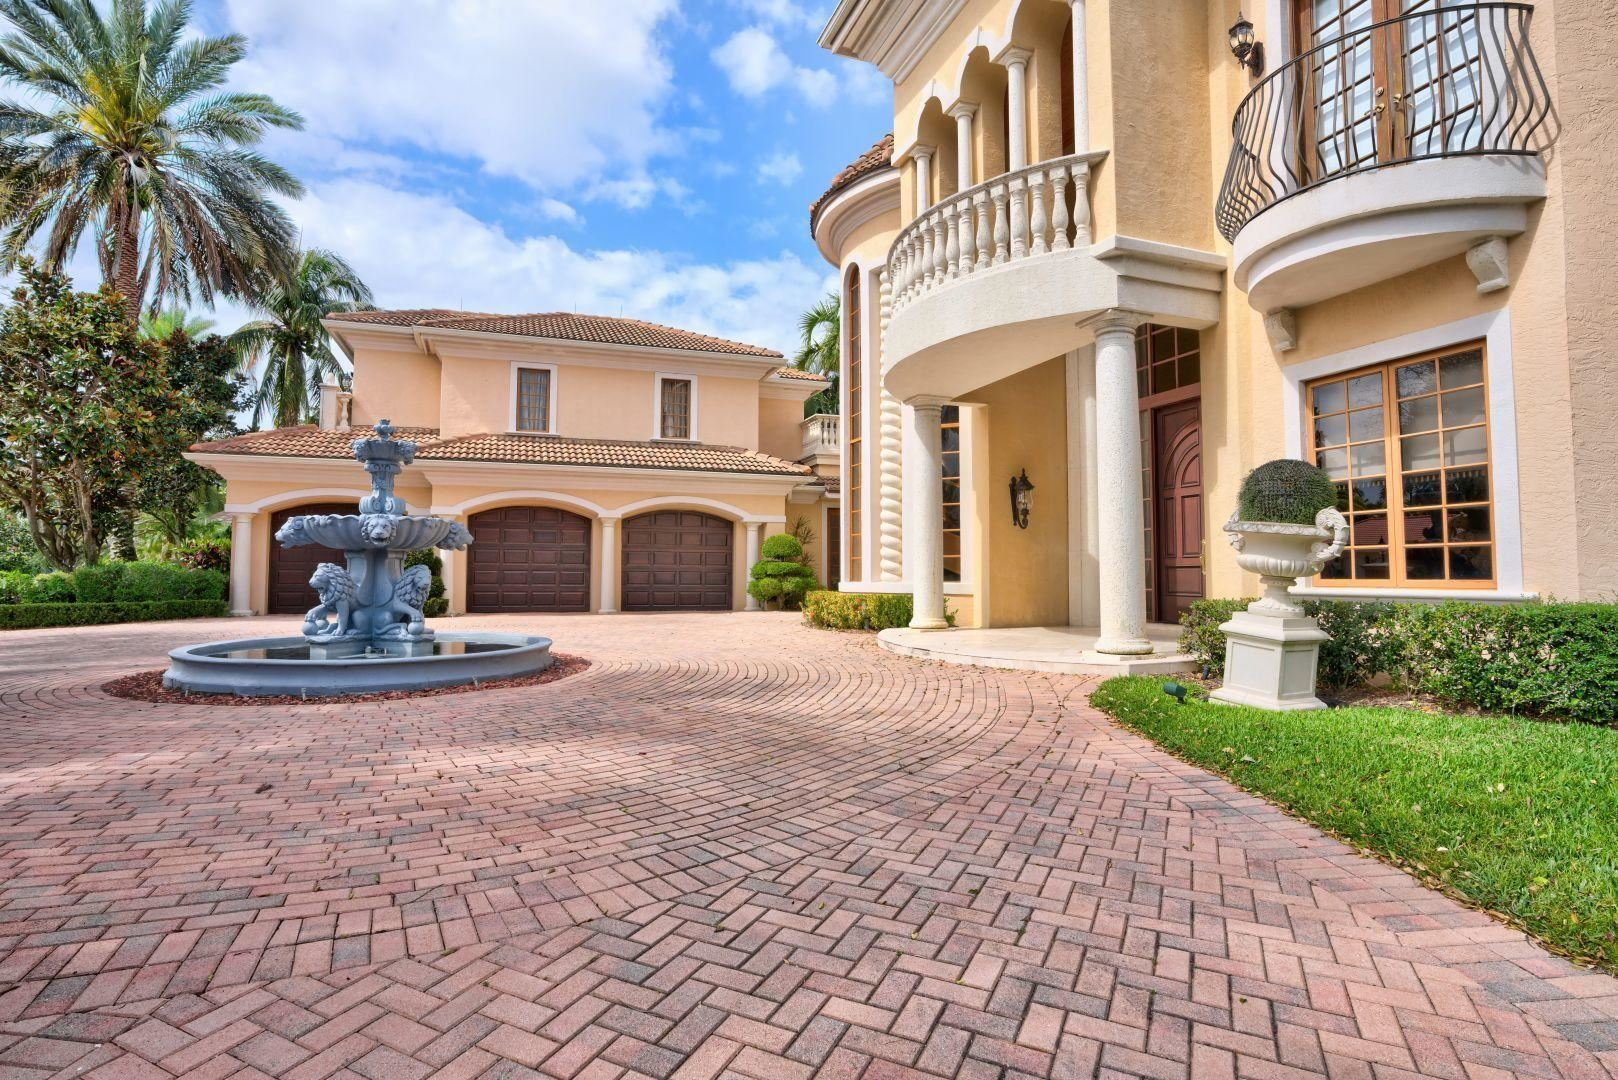 Photo of 12 St George Place, Palm Beach Gardens, FL 33418 (MLS # RX-10610992)